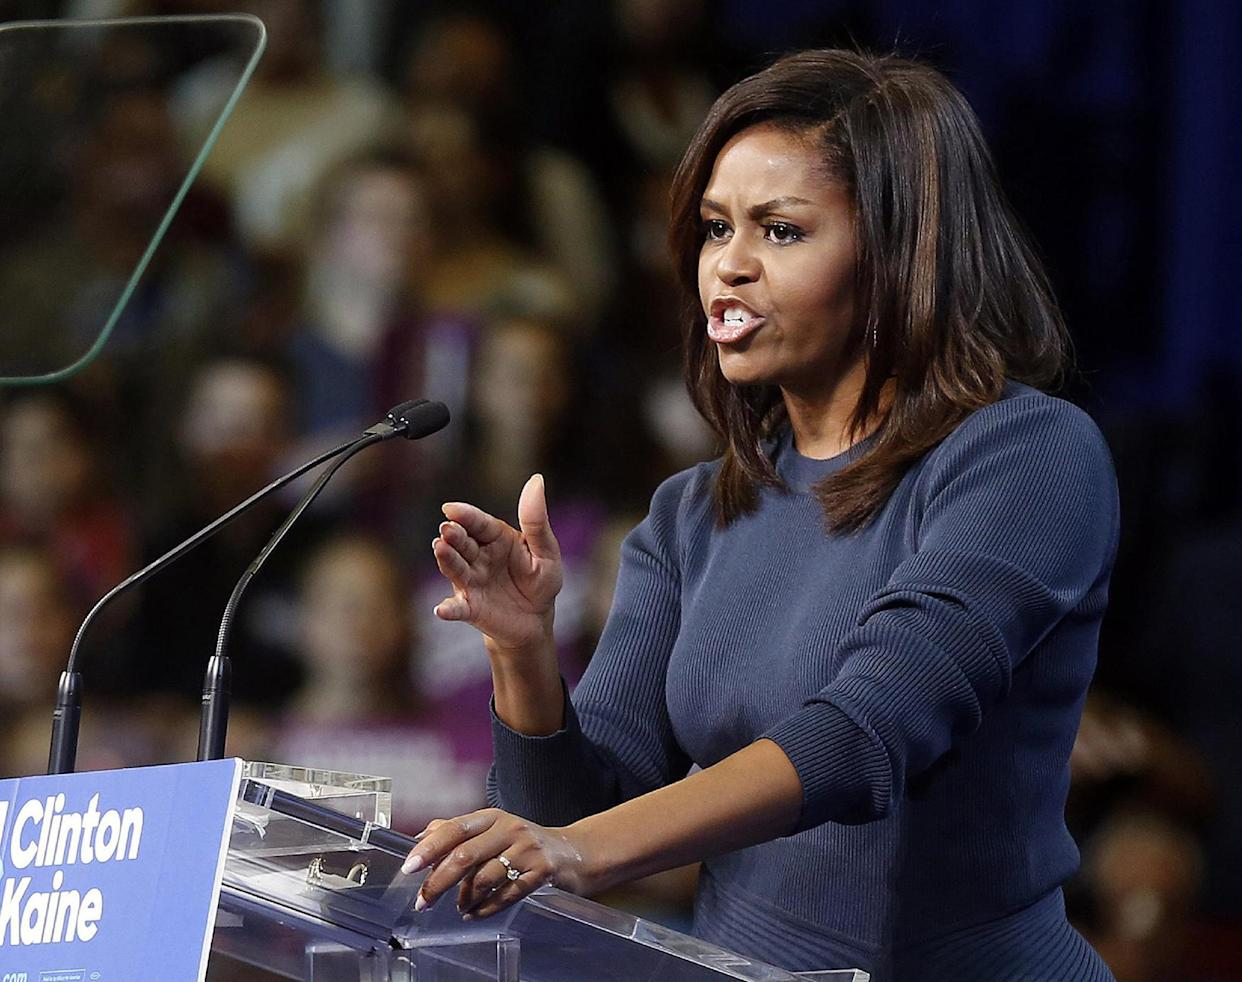 First lady Michelle Obama speaks during a campaign rally for Democratic presidential candidate Hillary Clinton on Oct. 13, 2016, in Manchester, N.H. (Photo: Jim Cole/AP)